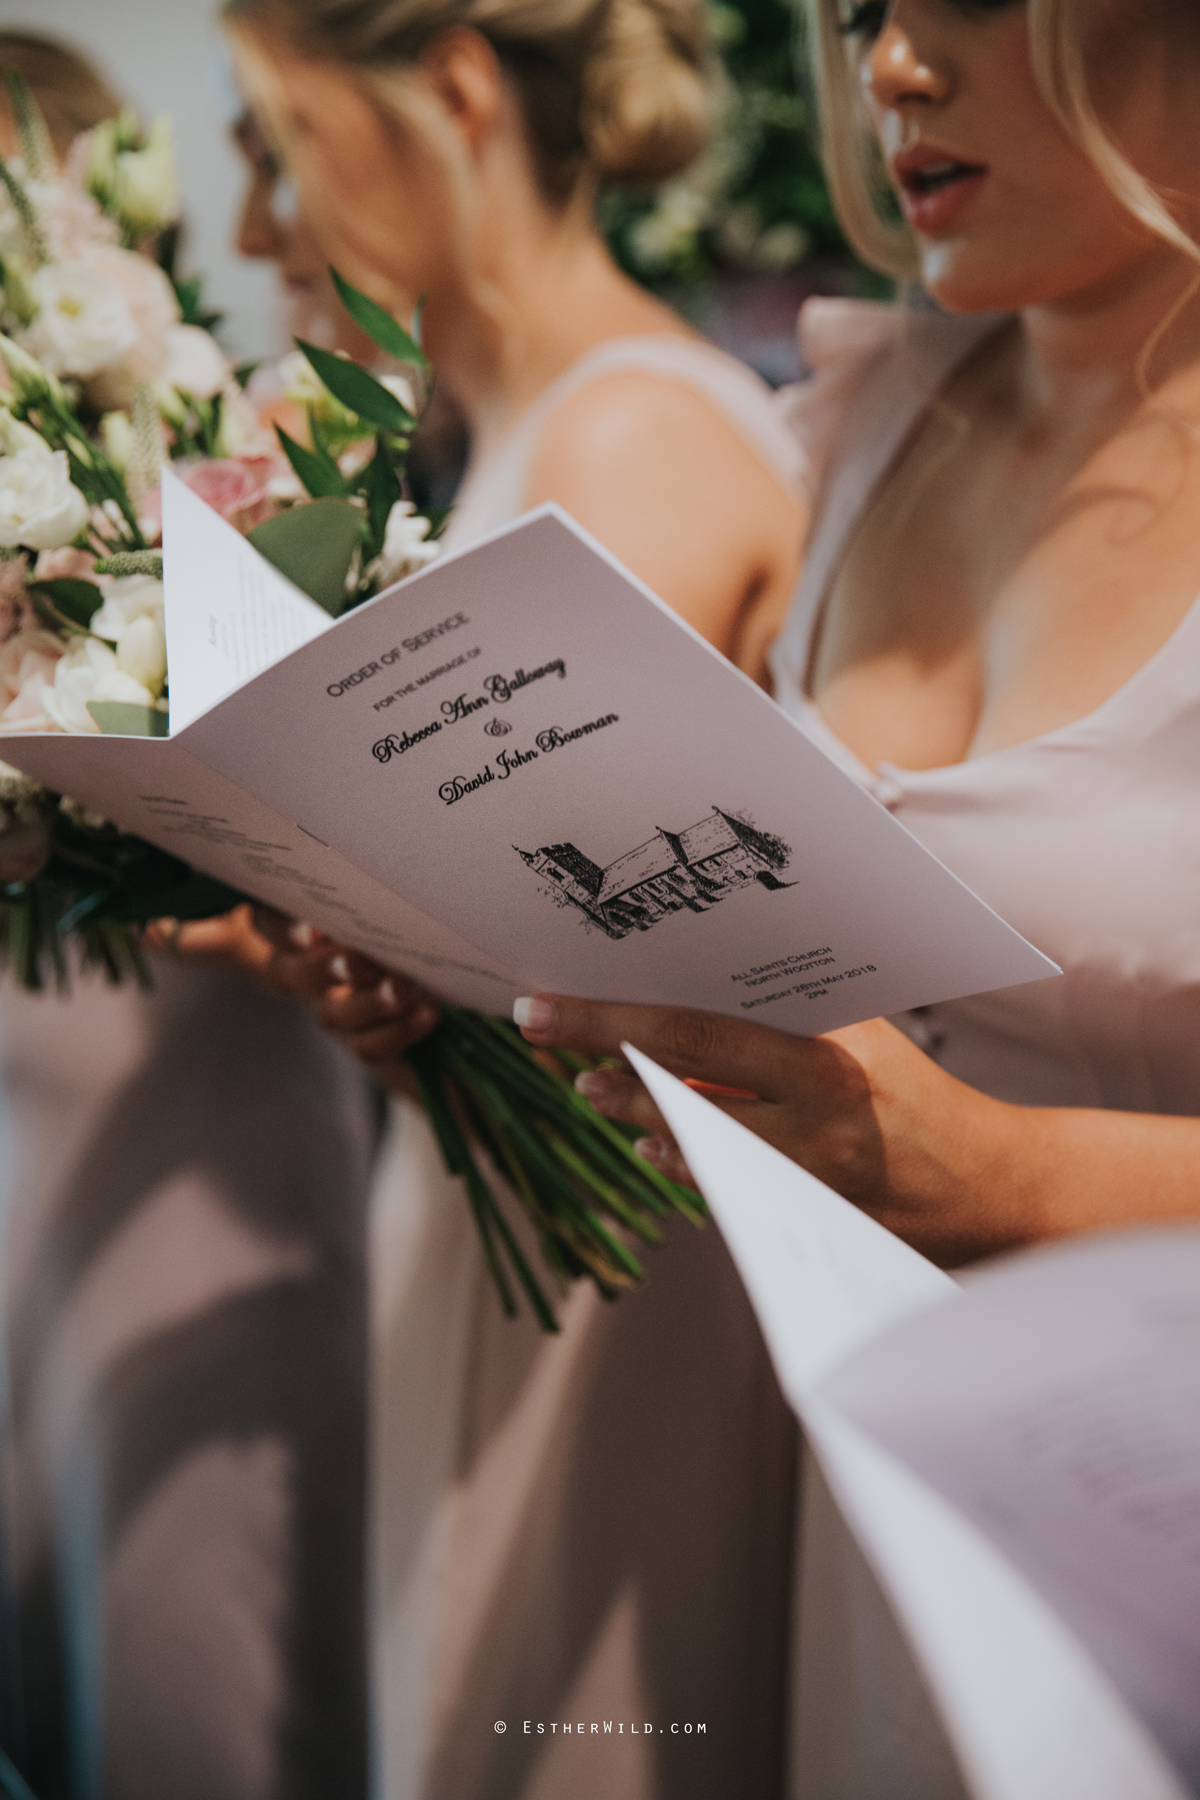 Wootton_Wedding_Copyright_Esther_Wild_Photographer_IMG_1112.jpg